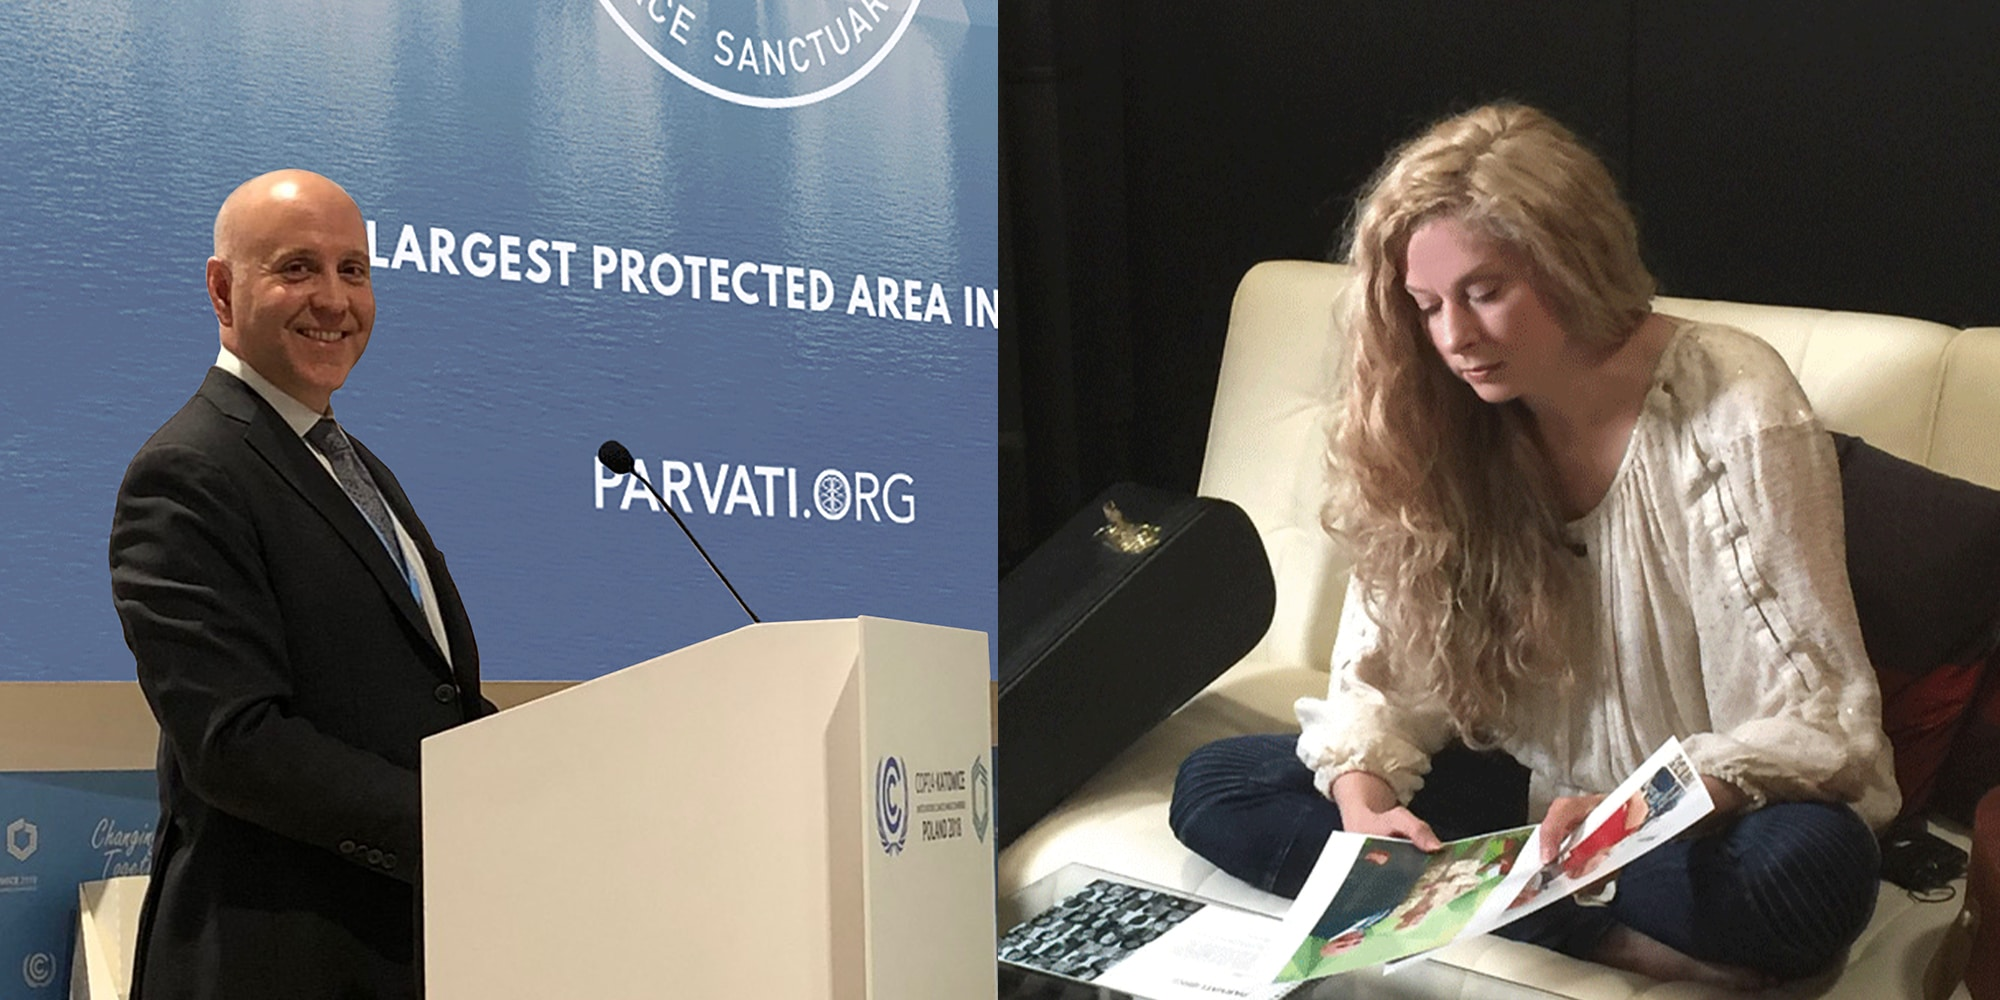 What the Huffington Post Got Wrong about Darcy Belanger, Parvati.org and the Marine Arctic Peace Sanctuary (MAPS)